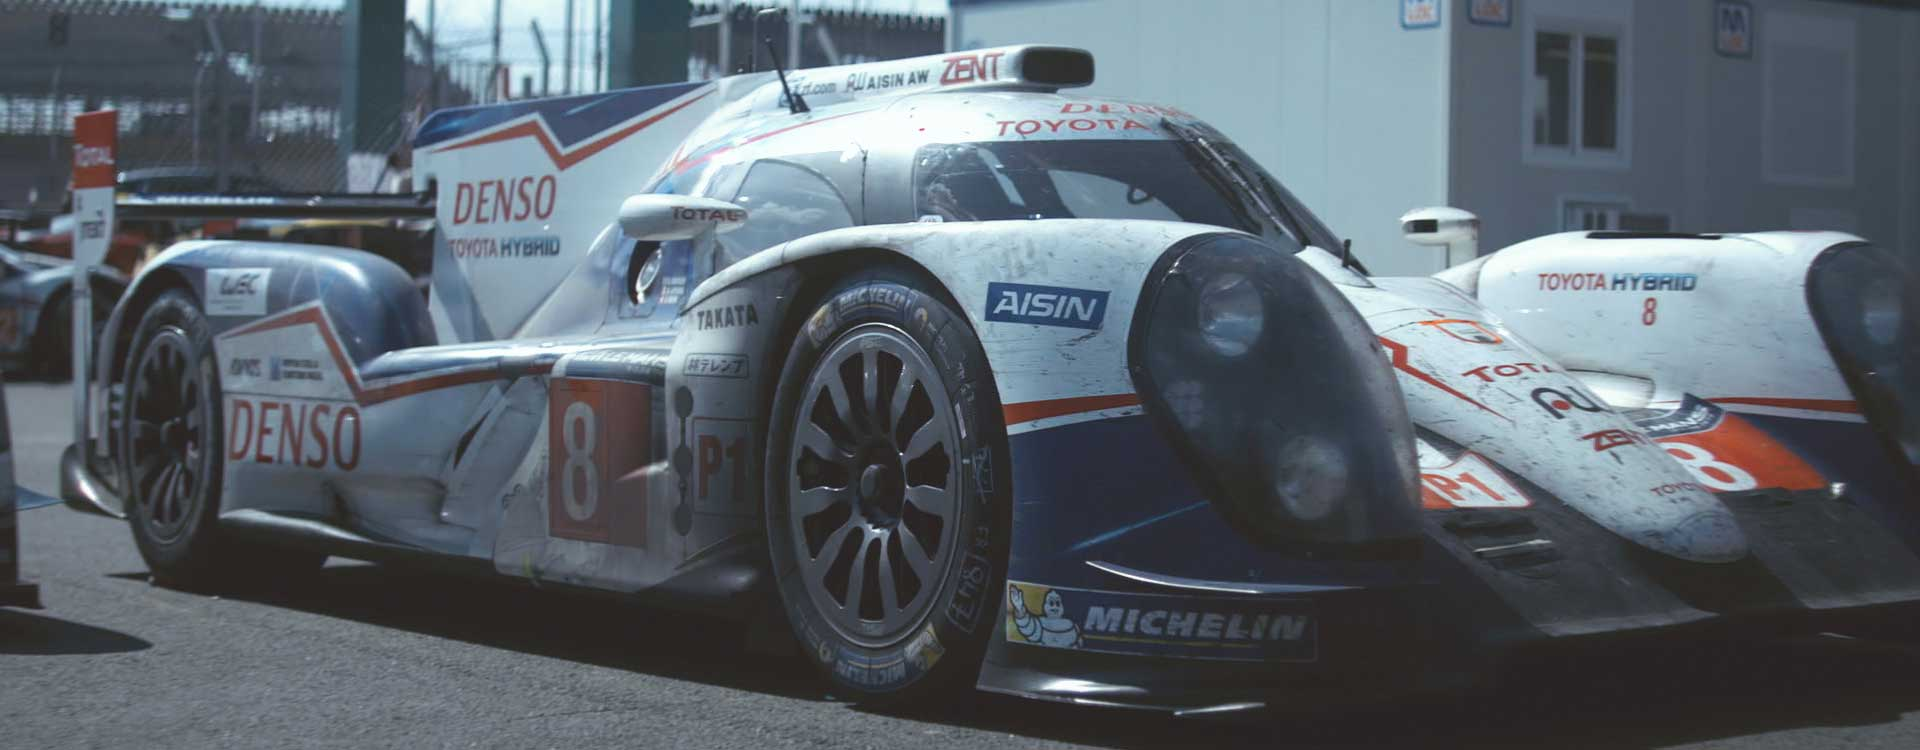 Racing car frontal view. Still from Toyota Hybrid Racing - Commercial Barbeque Design